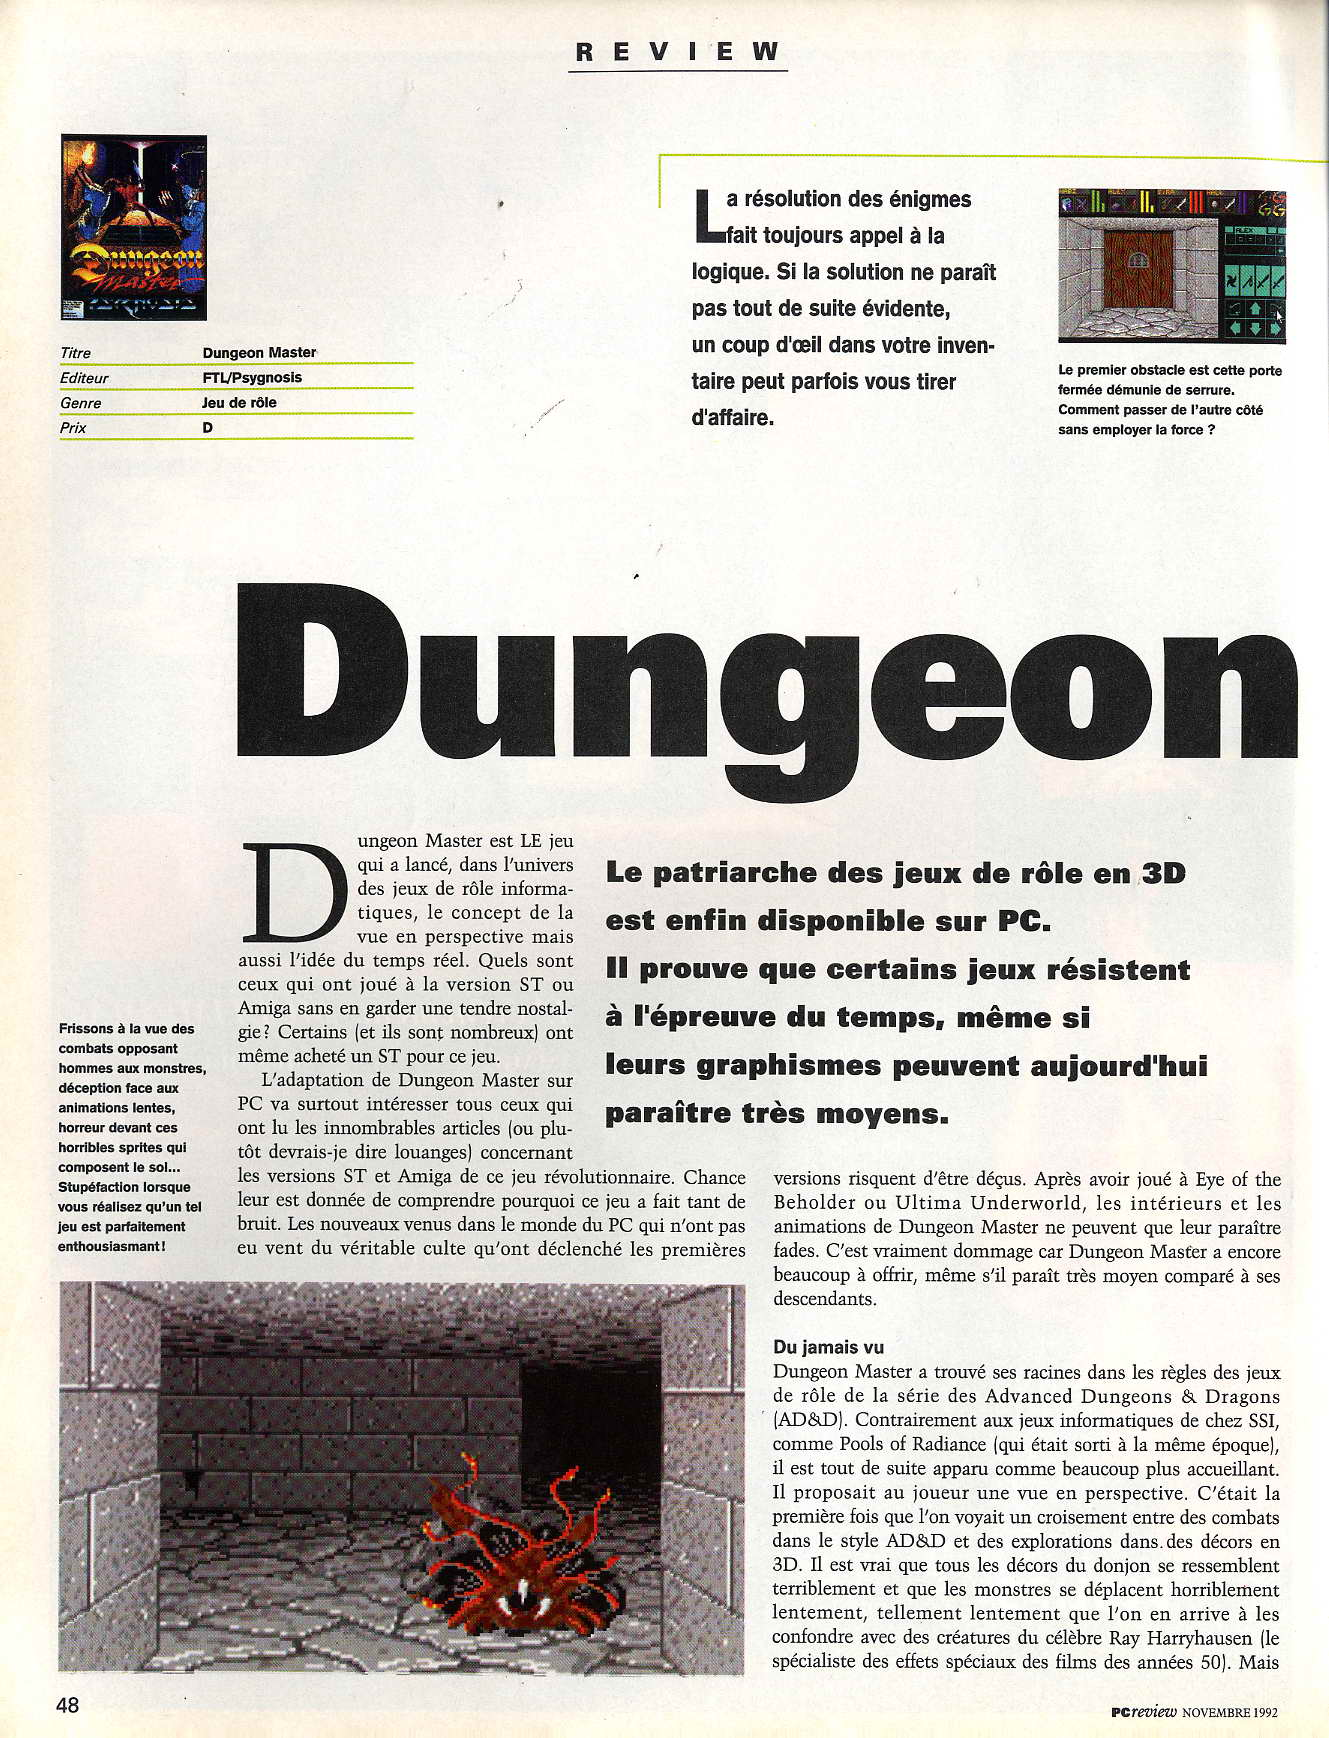 Dungeon Master for PC Review published in French magazine 'PC Review', Issue #2 November 1992, Page 48